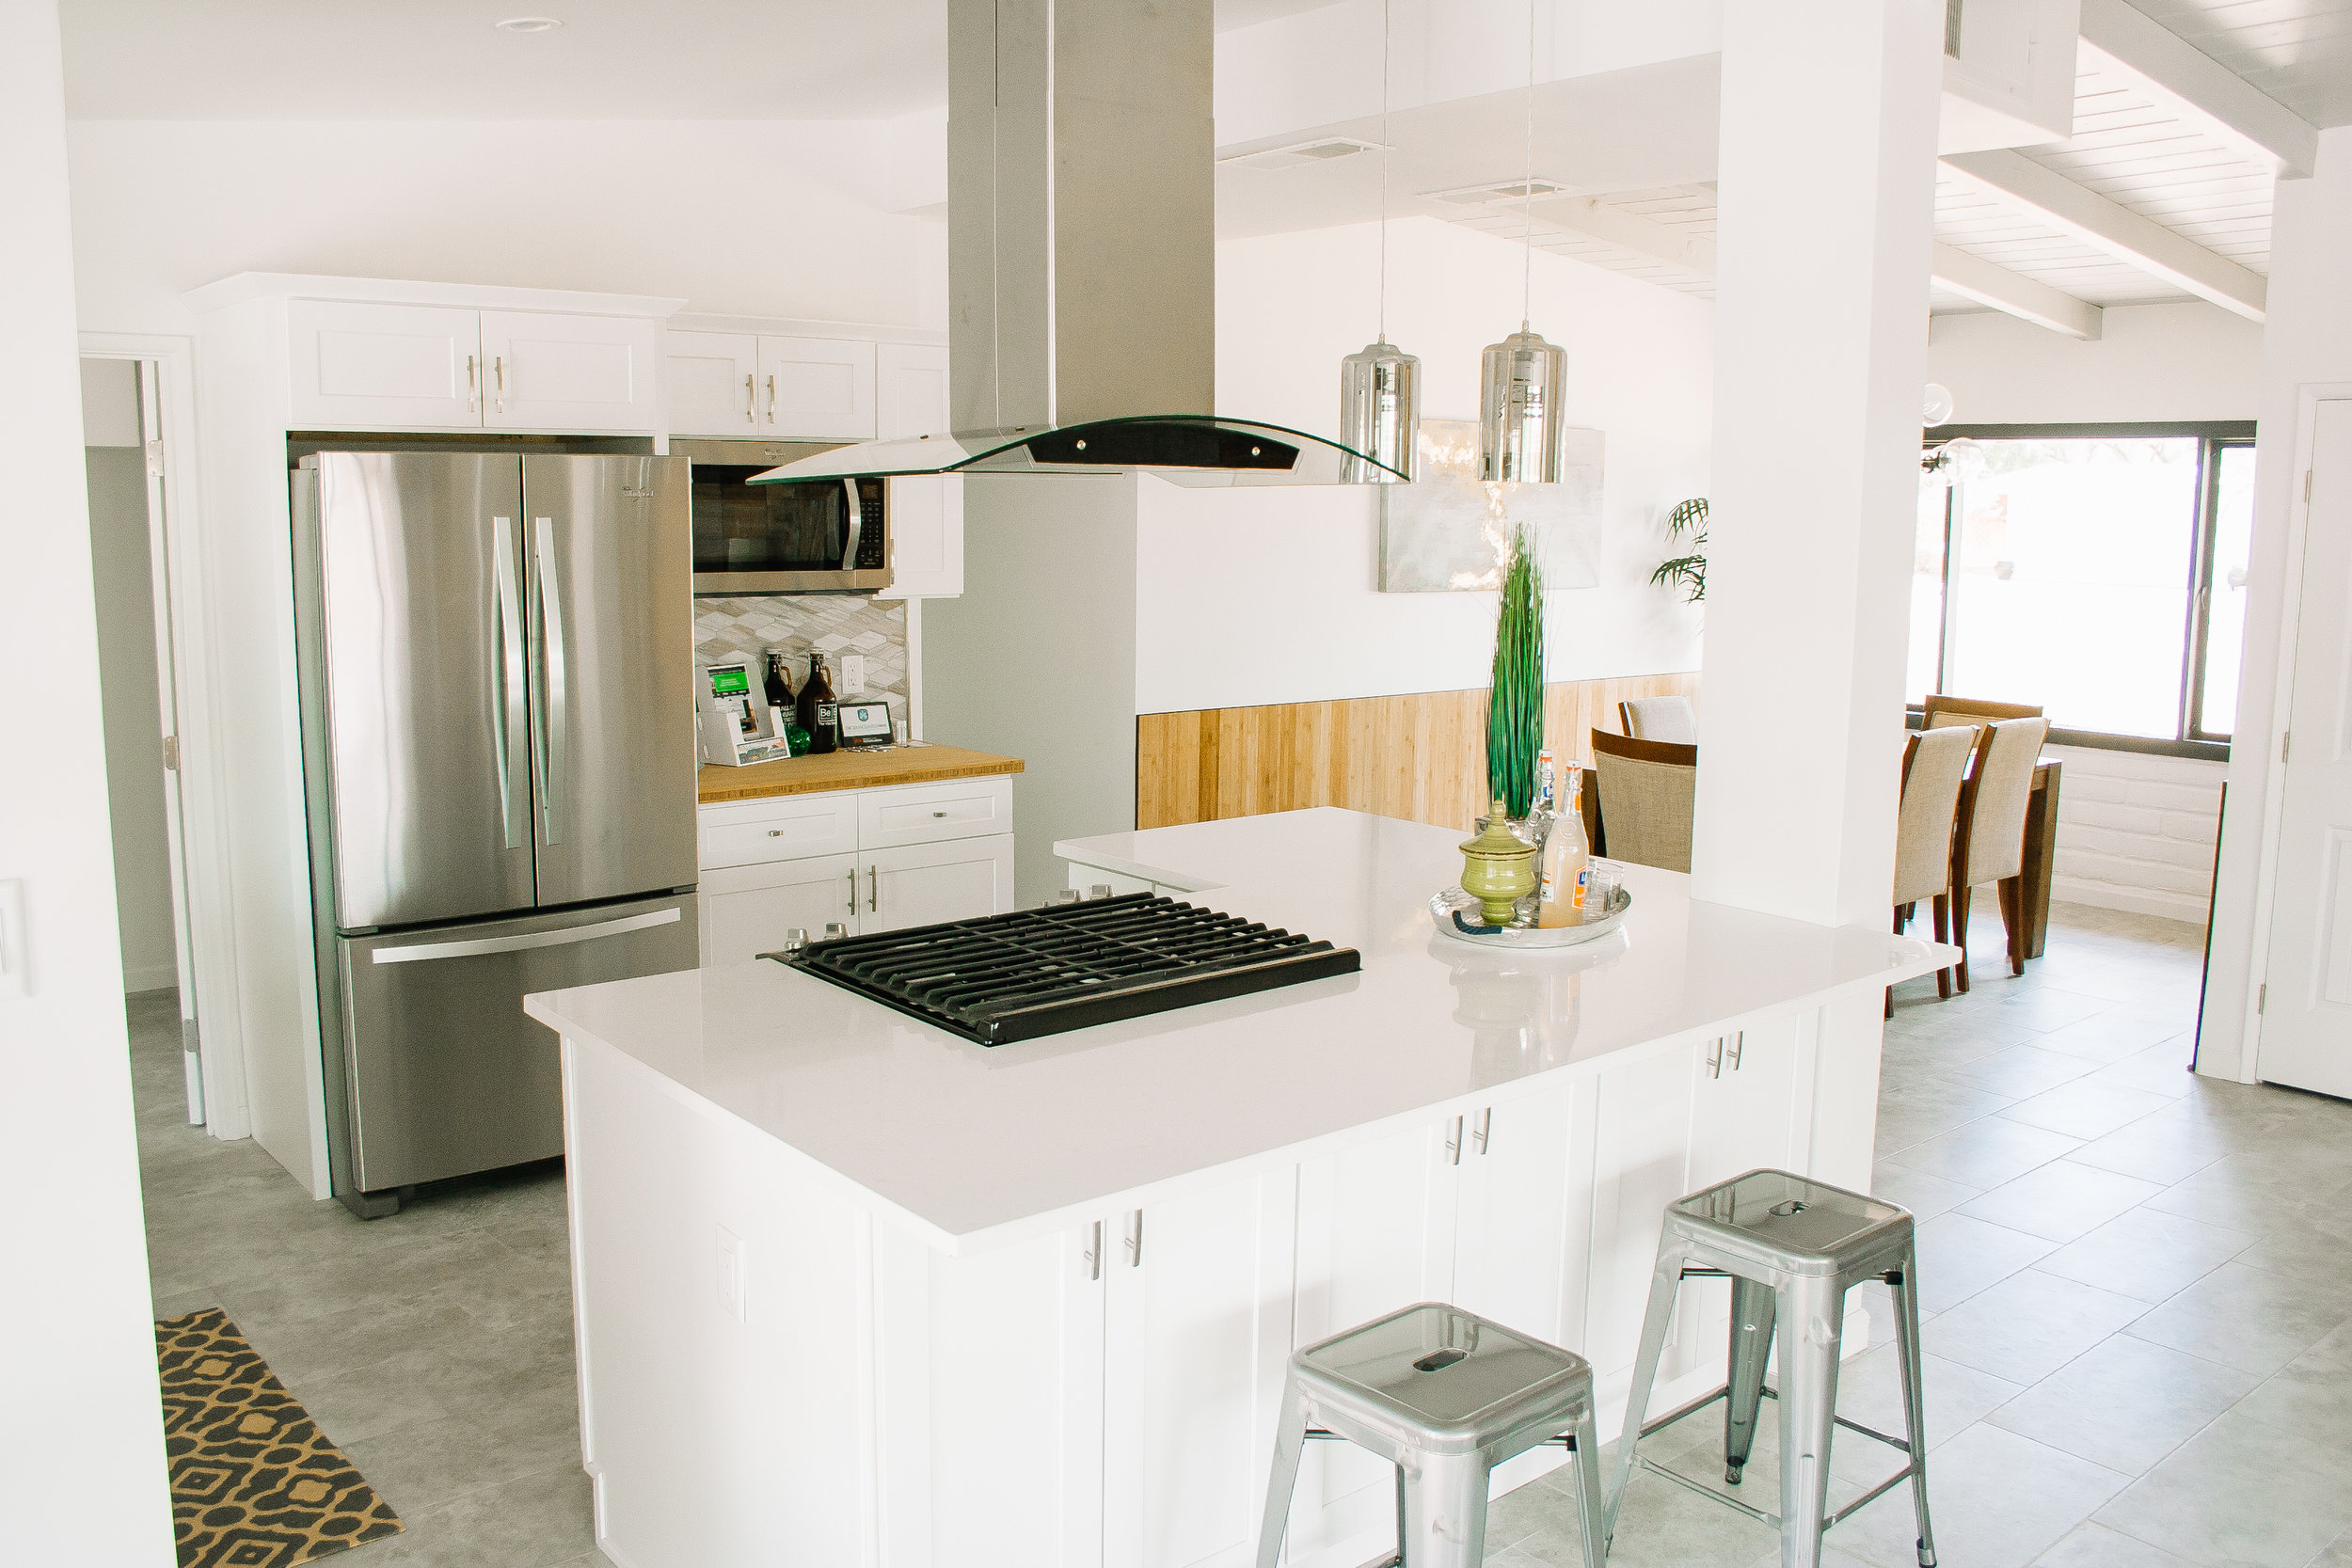 5_tips_from_home_sellers_vanguard_exp_kitchen.jpg